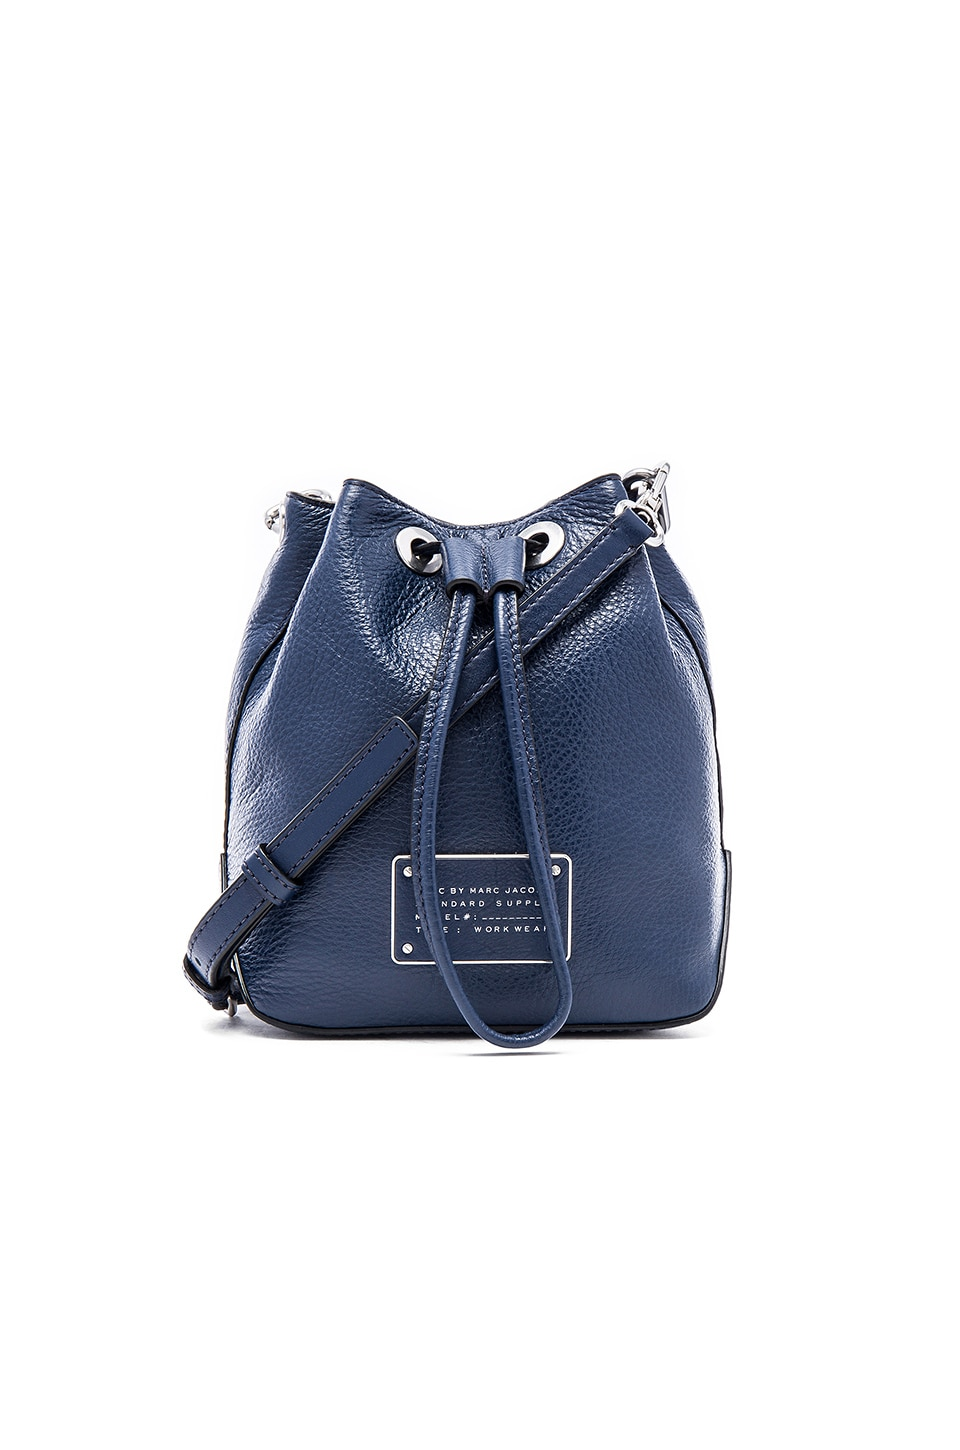 Marc by Marc Jacobs Too Hot To Handle Drawstring Bucket Bag in Amalfi Coast